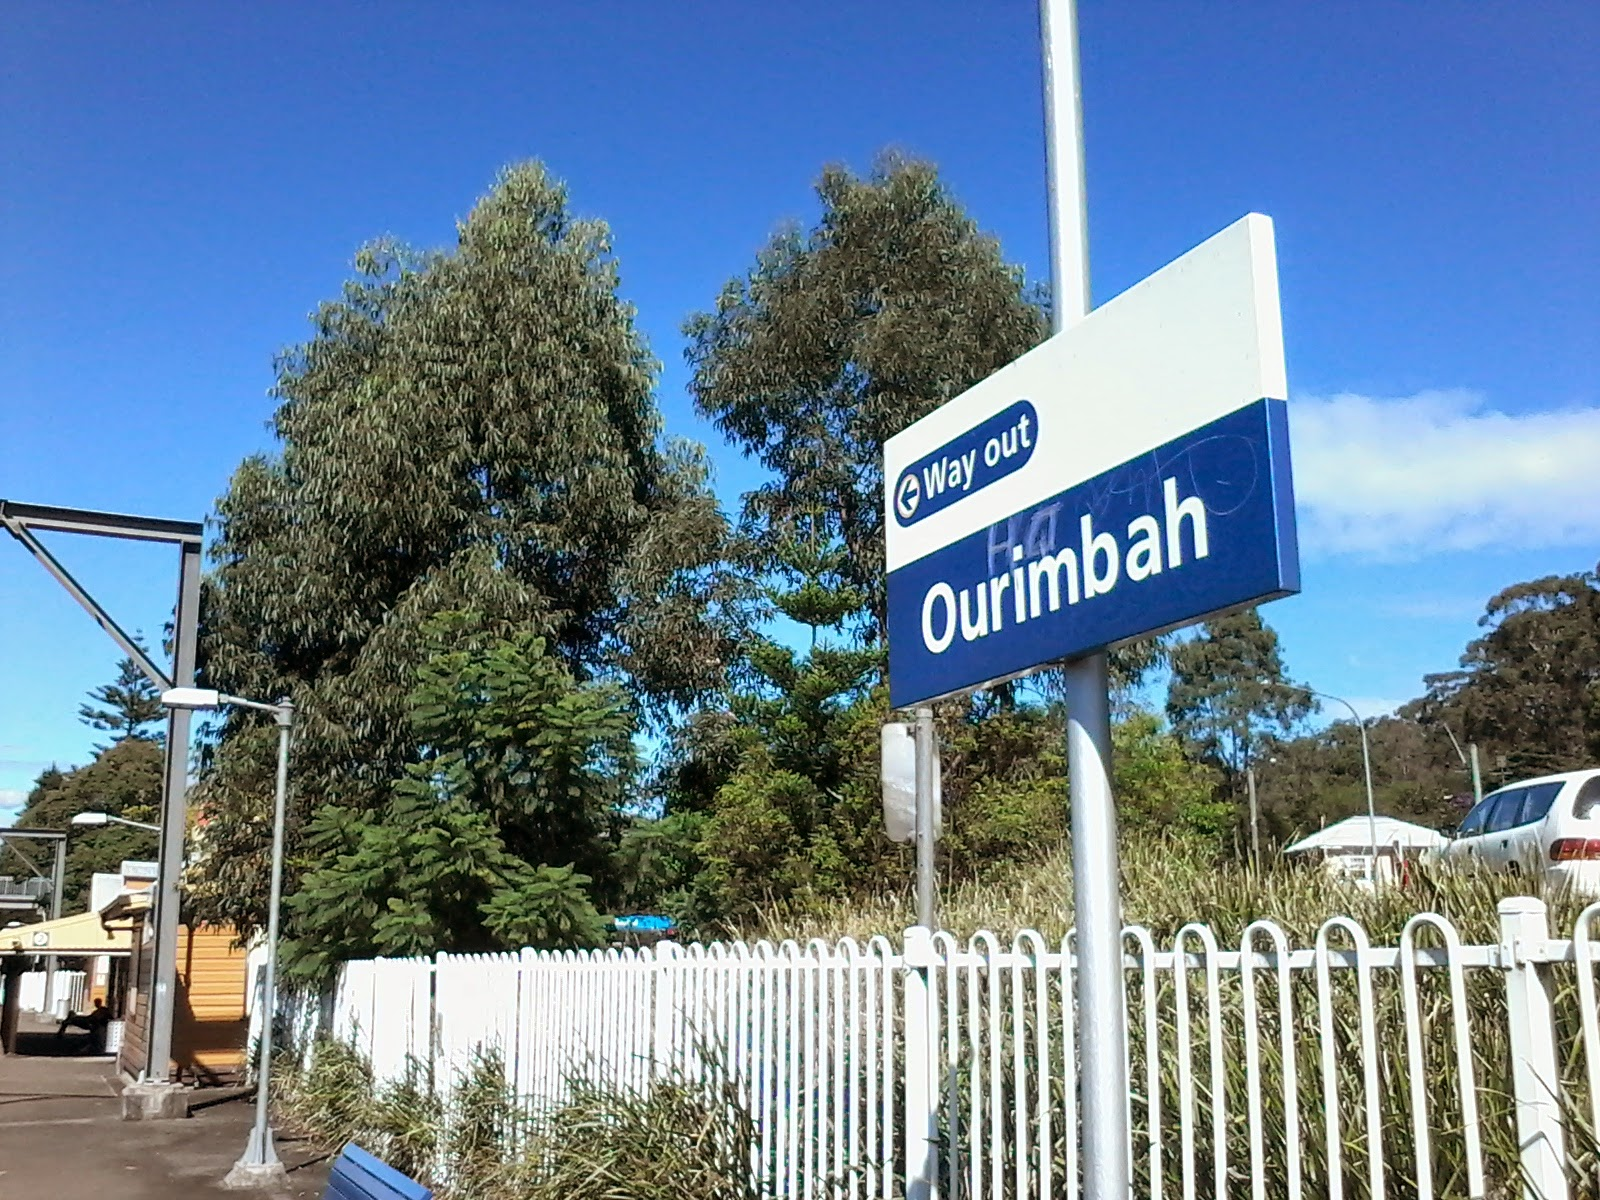 Our Ourimbah, in the bush, on the old Pacific Highway, at San Remo.